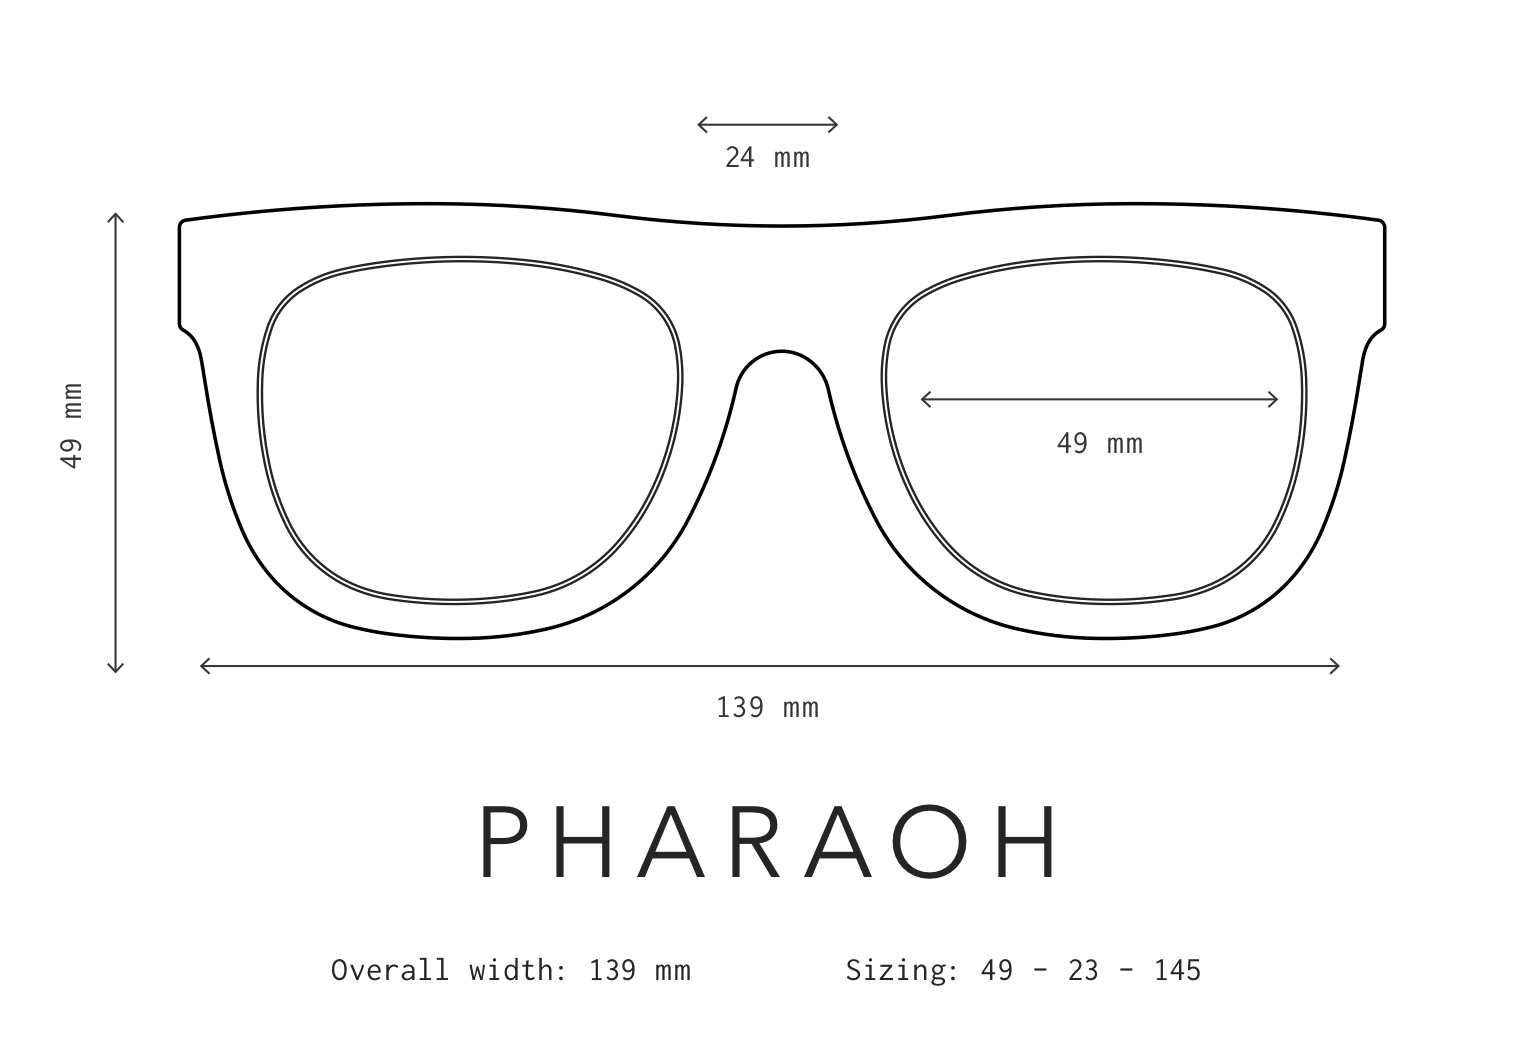 Pharaoh Sunglasses Fit Information